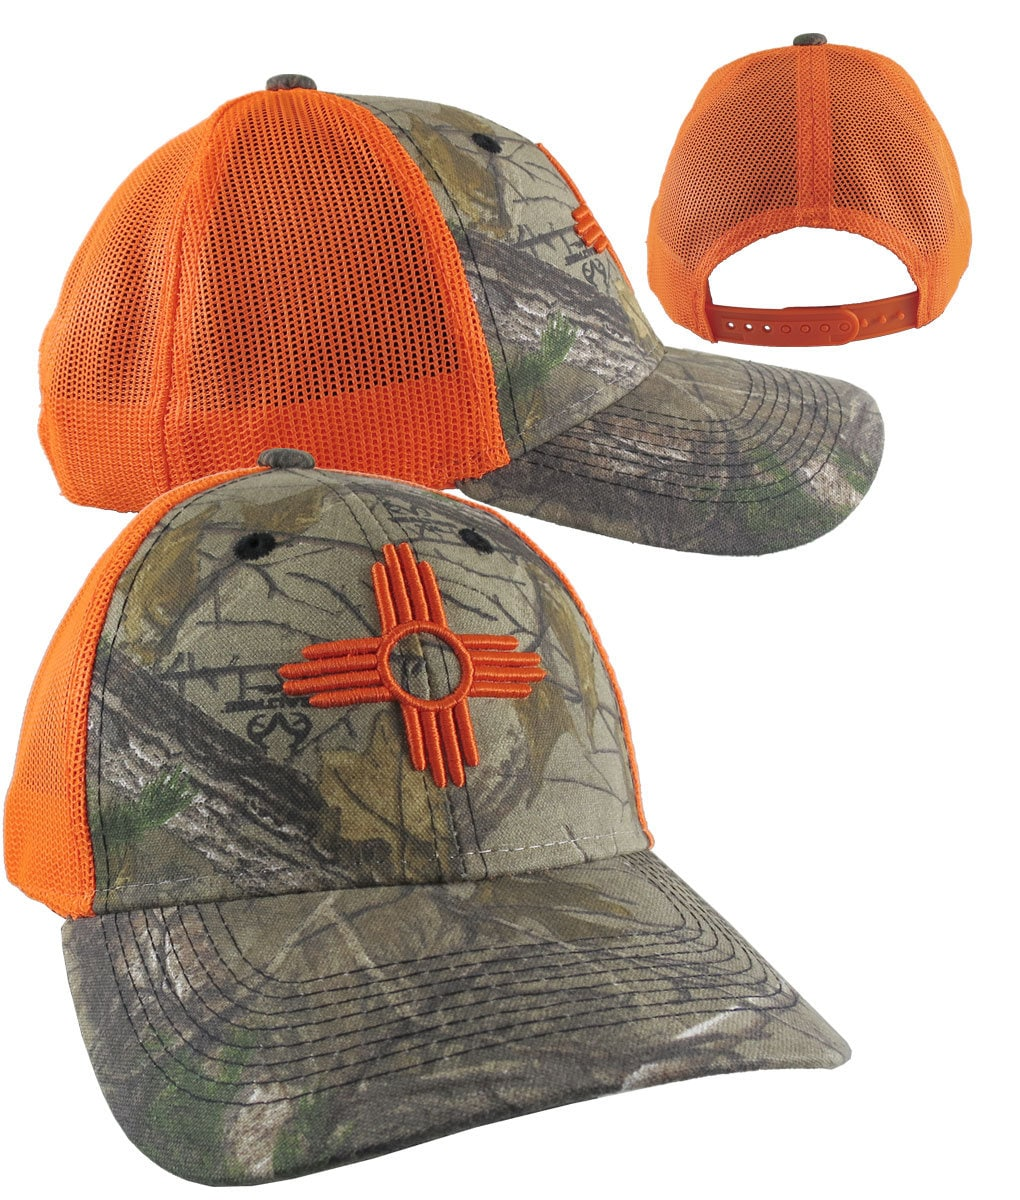 bd7b24b4a090a New Mexico State Flag Symbol Orange 3D Puff Raised Embroidery Design on an  Adjustable Realtree Camo Structured Classic Trucker Mesh Cap